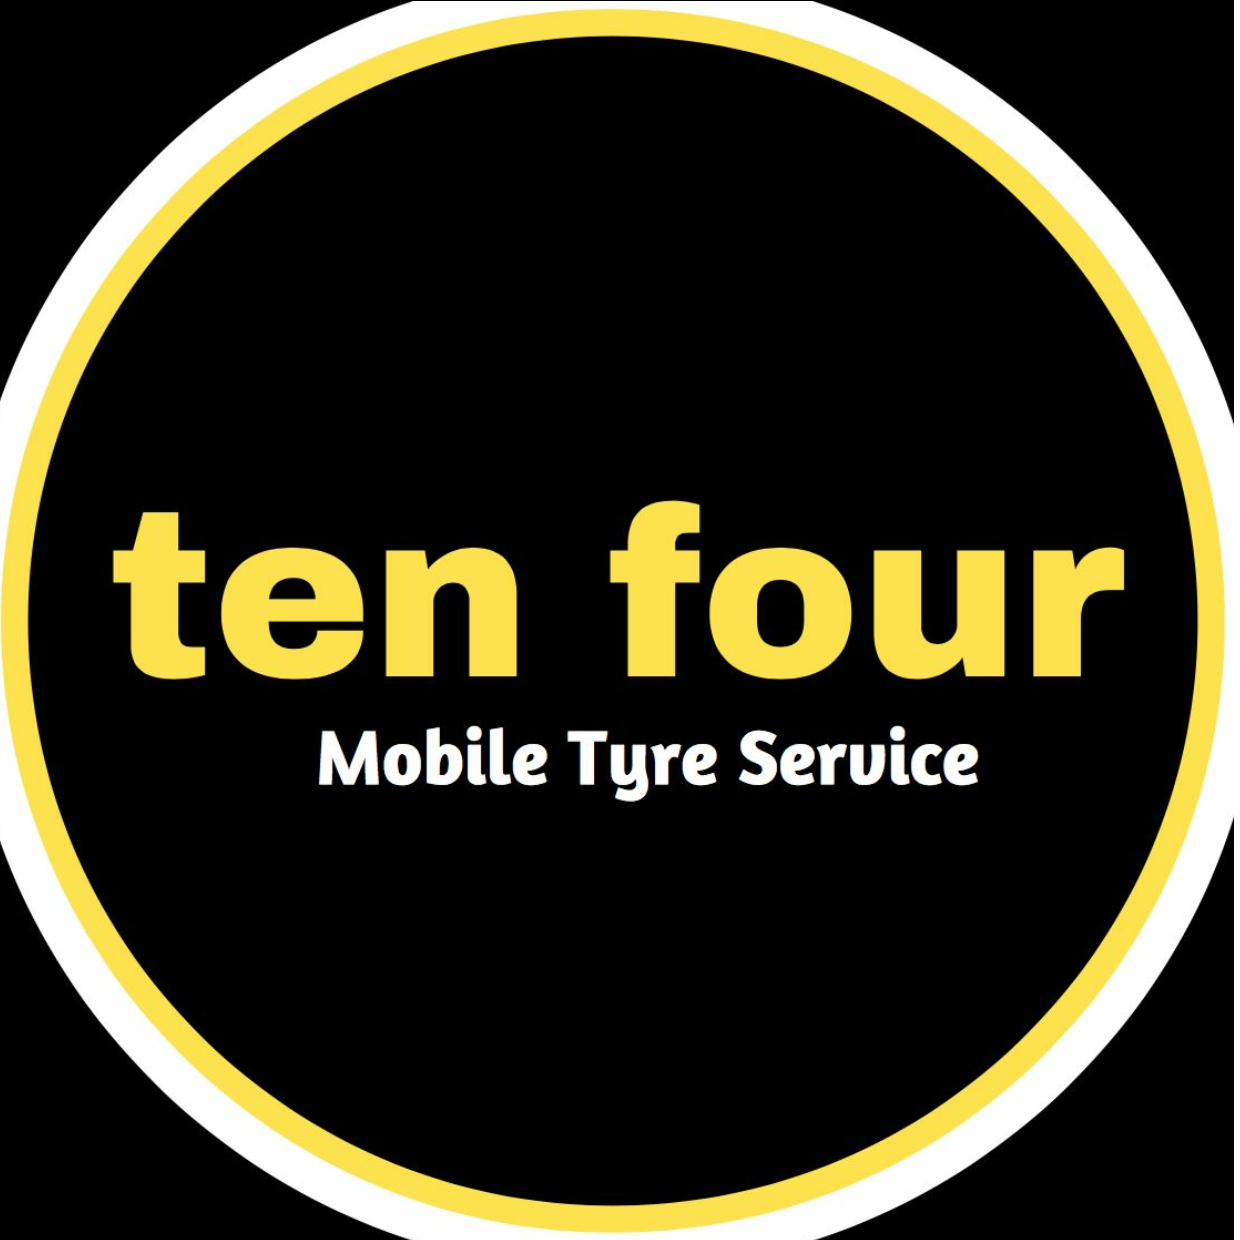 TEN FOUR MOBILE TYRE SERVICE